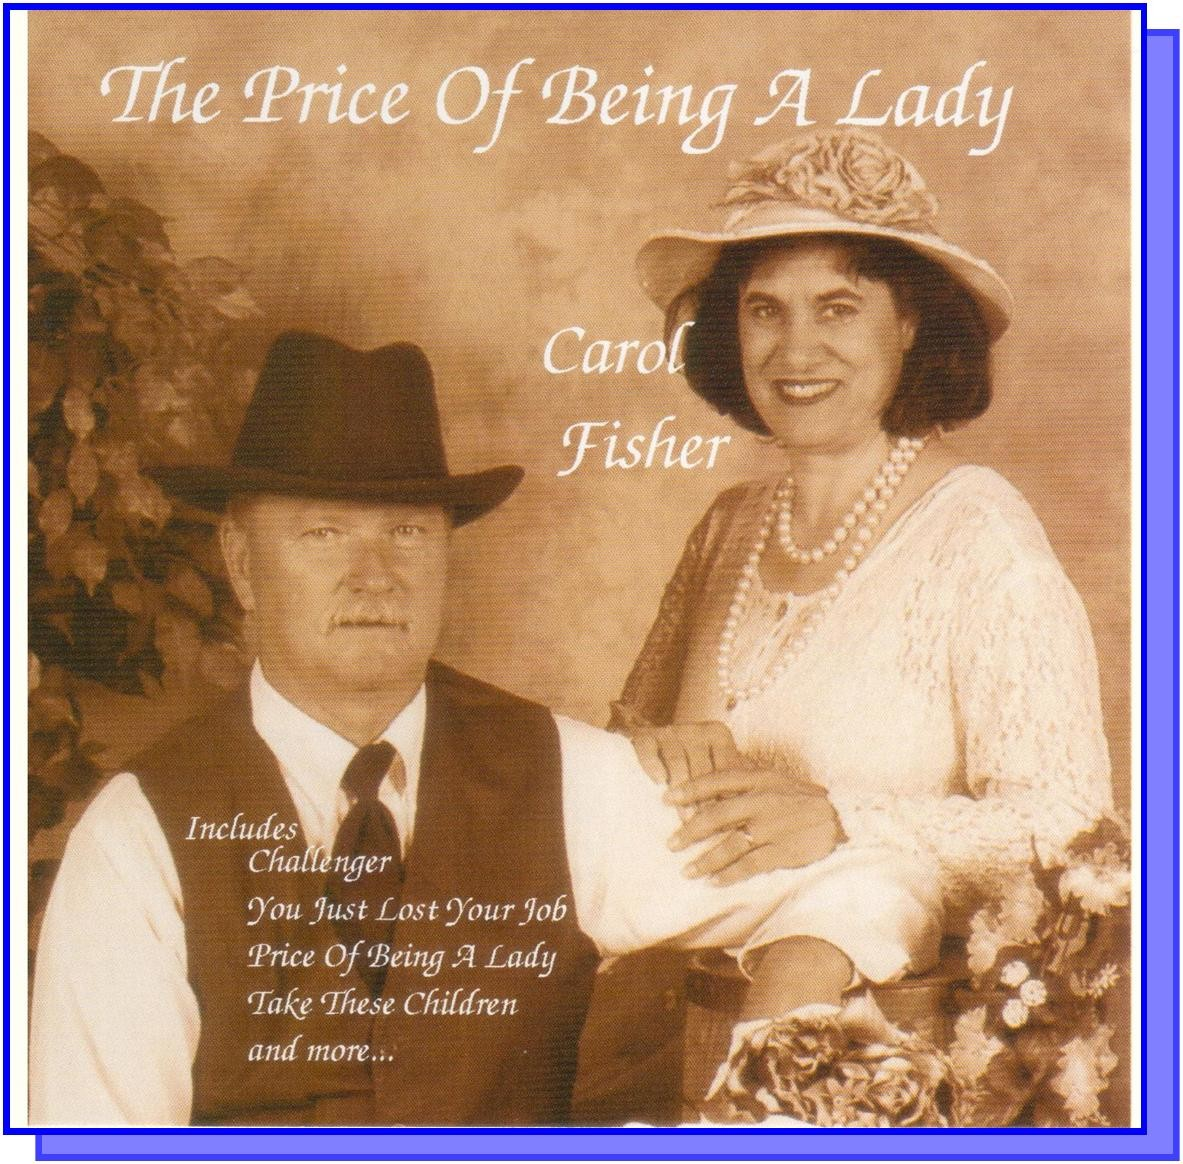 The Price of Being a Lady CD